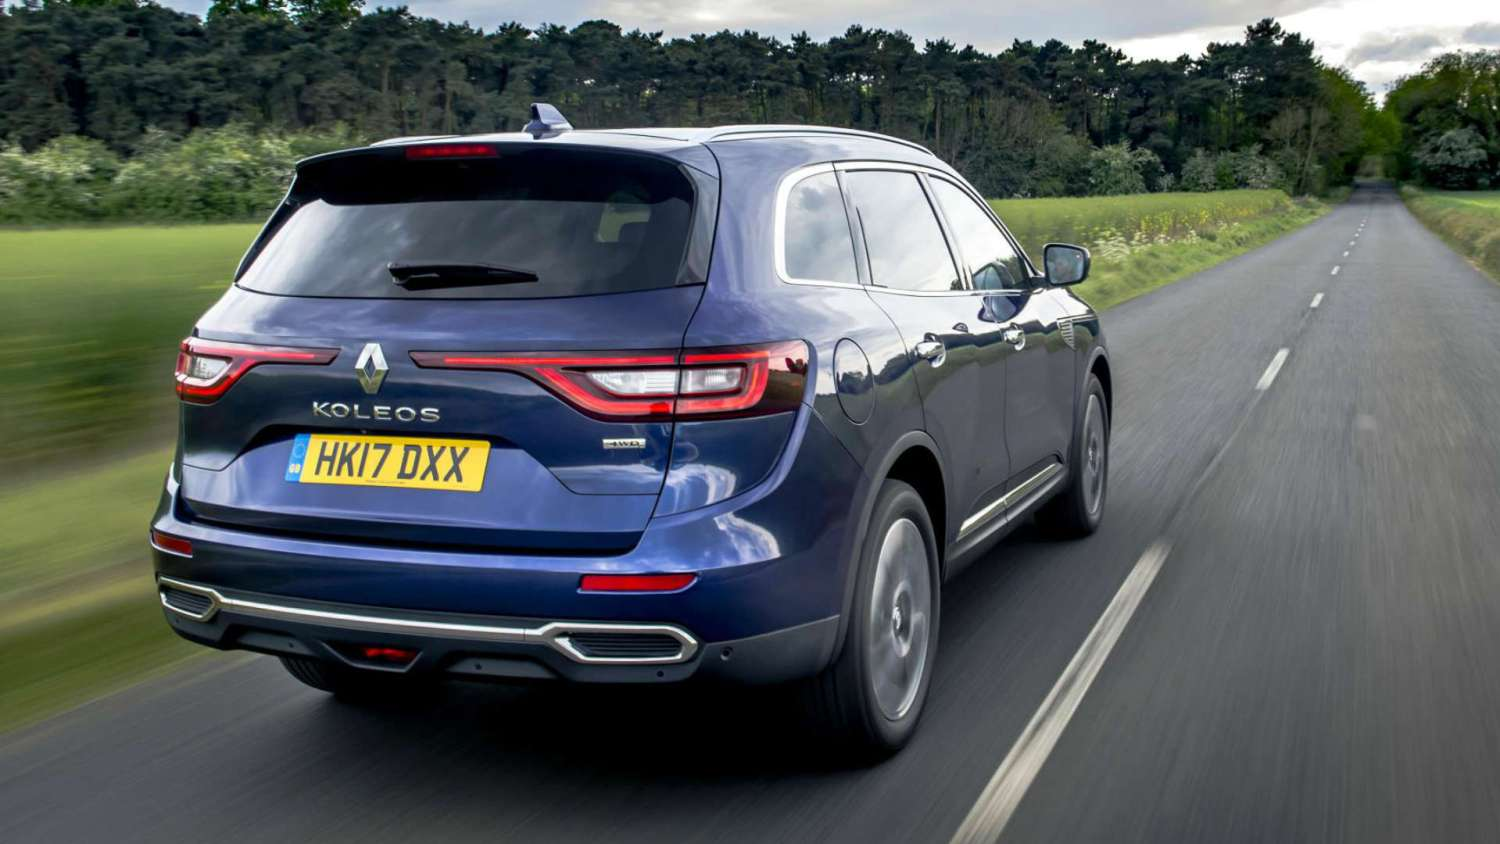 Renault Koles special offers